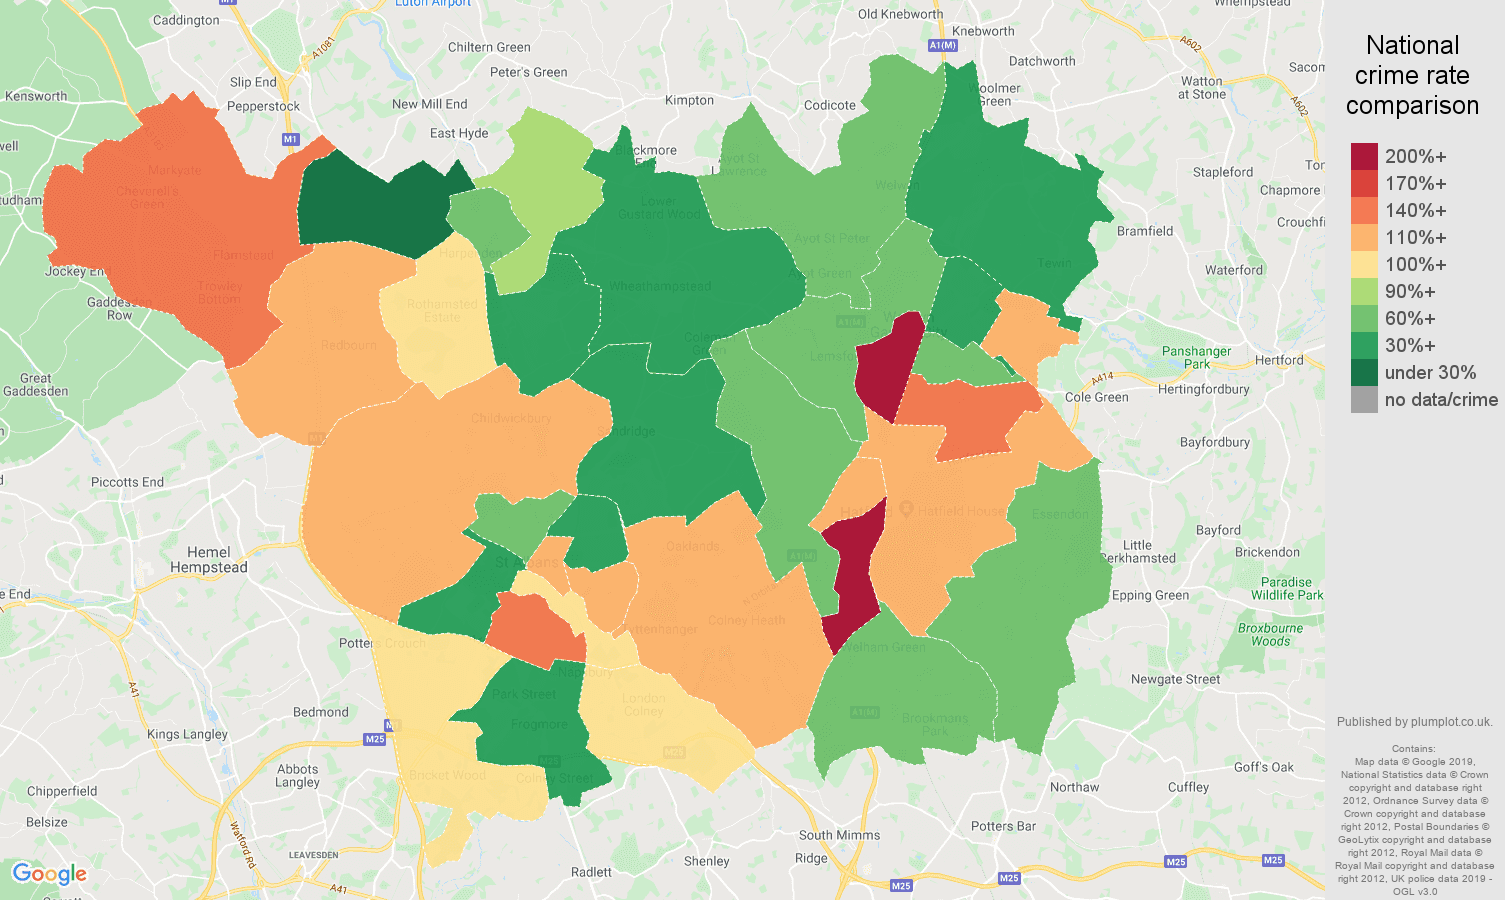 St Albans other crime rate comparison map